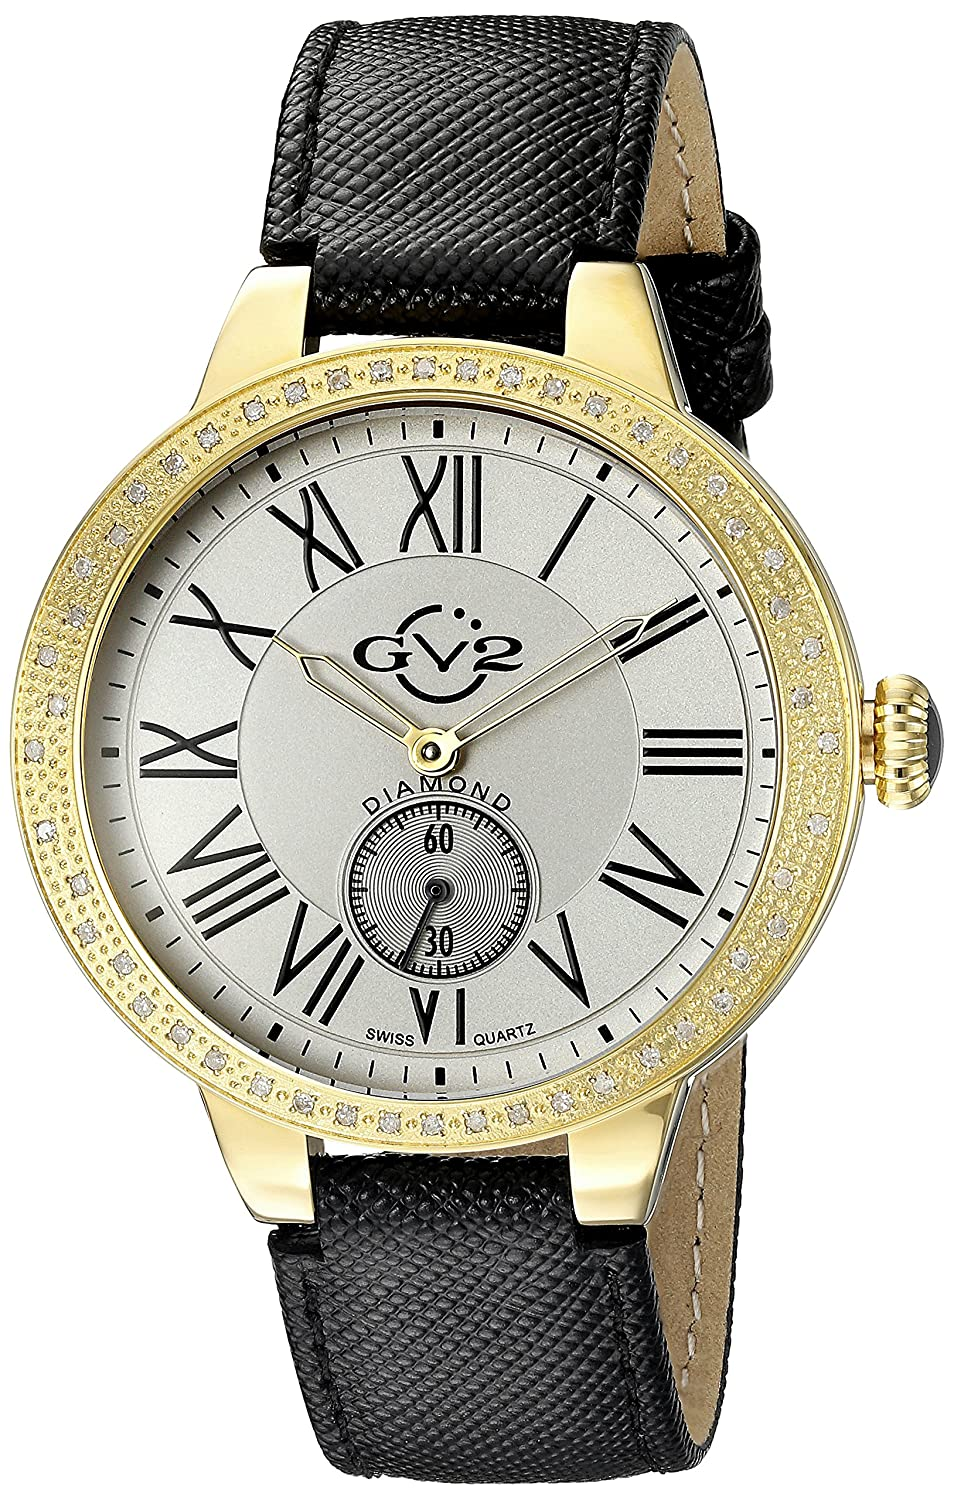 Gv2 By Gevril Astor Womens Diamond Swiss Quartz Black Leather Strap Watch, (Model: 9107) by Gv2 By Gevril